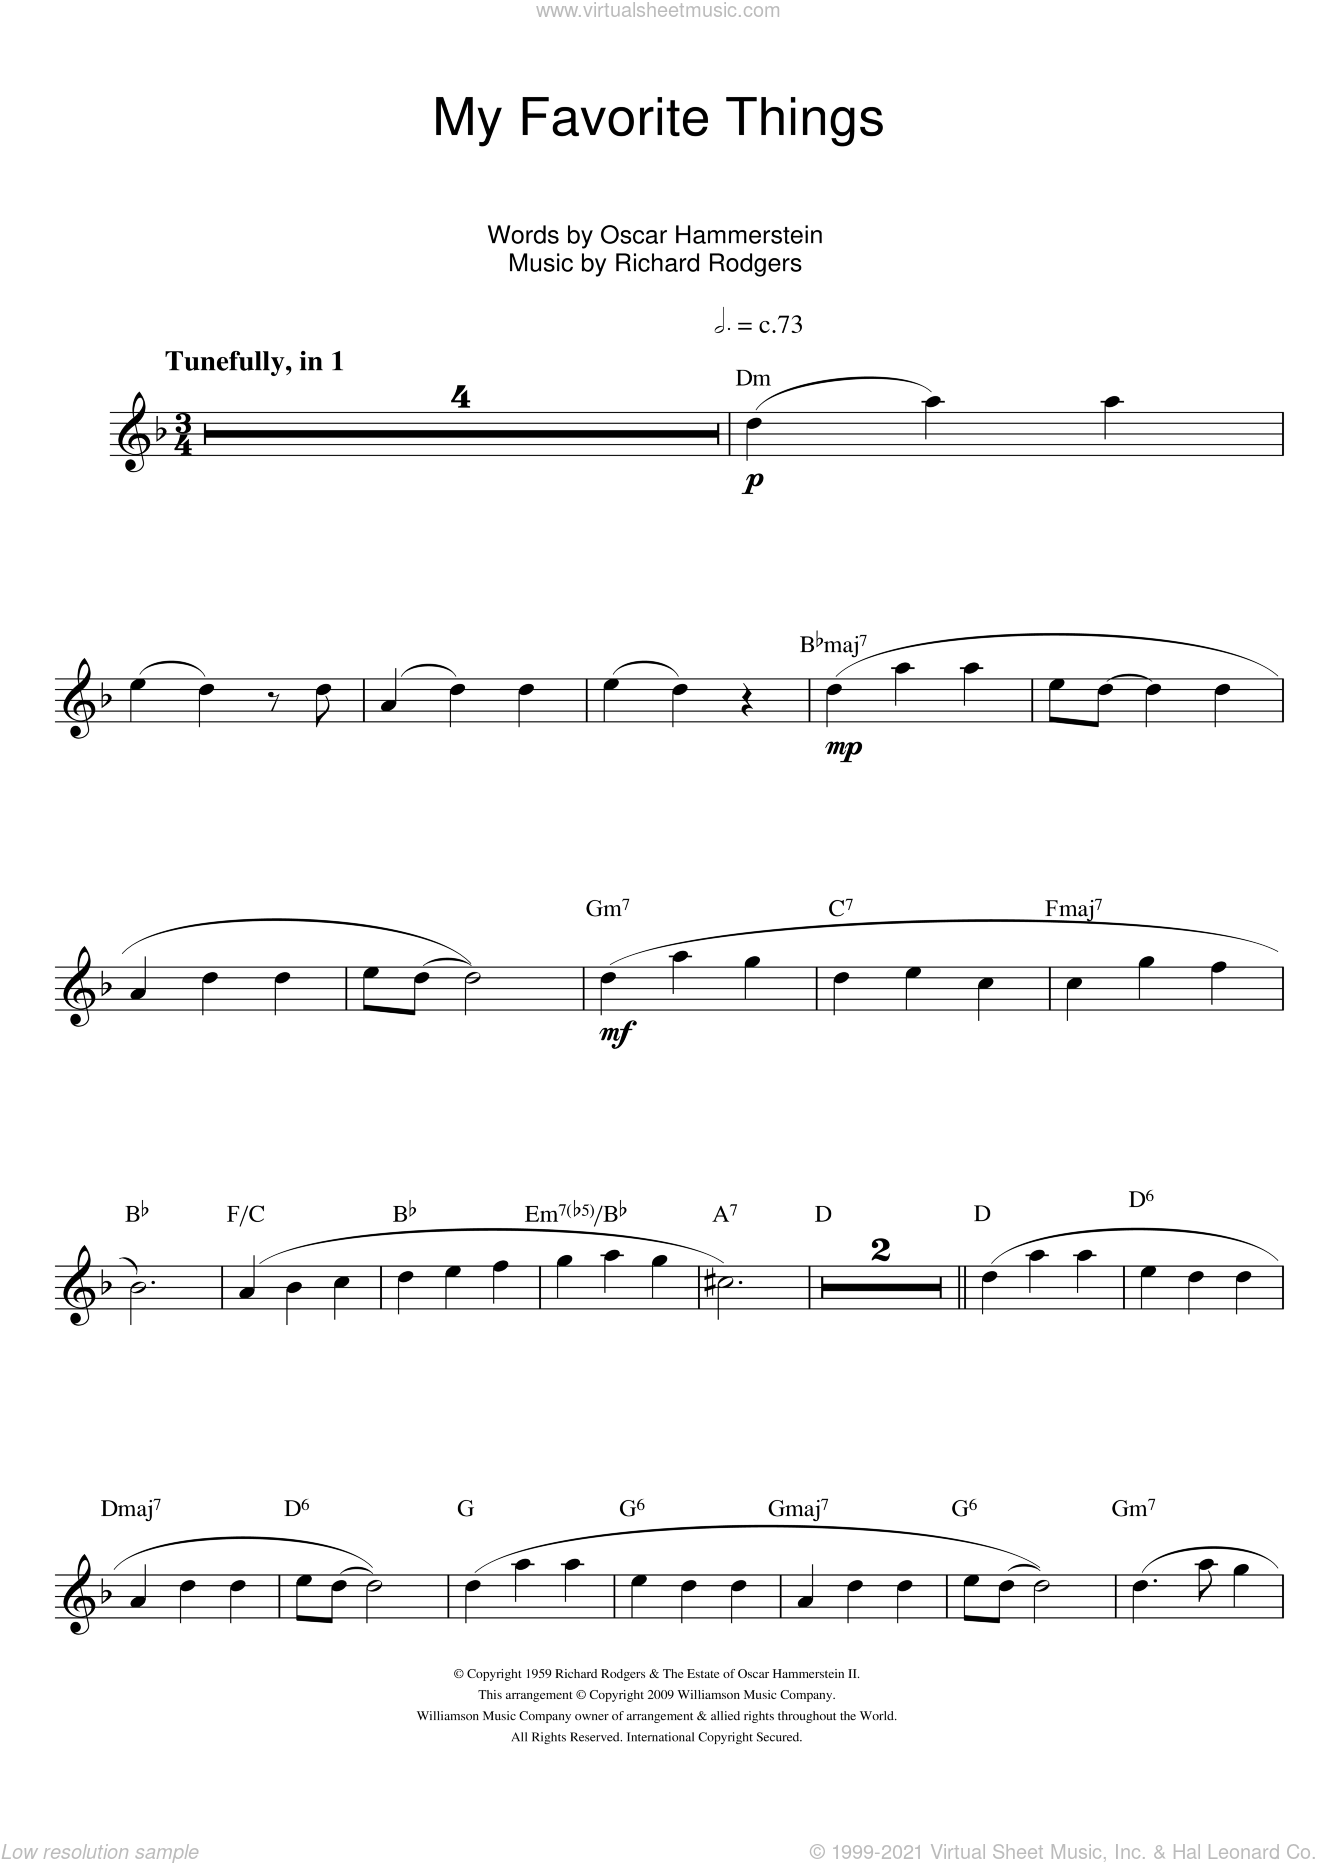 My Favorite Things (from The Sound Of Music) sheet music for flute solo by Rodgers & Hammerstein, Richard Rodgers and Oscar II Hammerstein, intermediate skill level